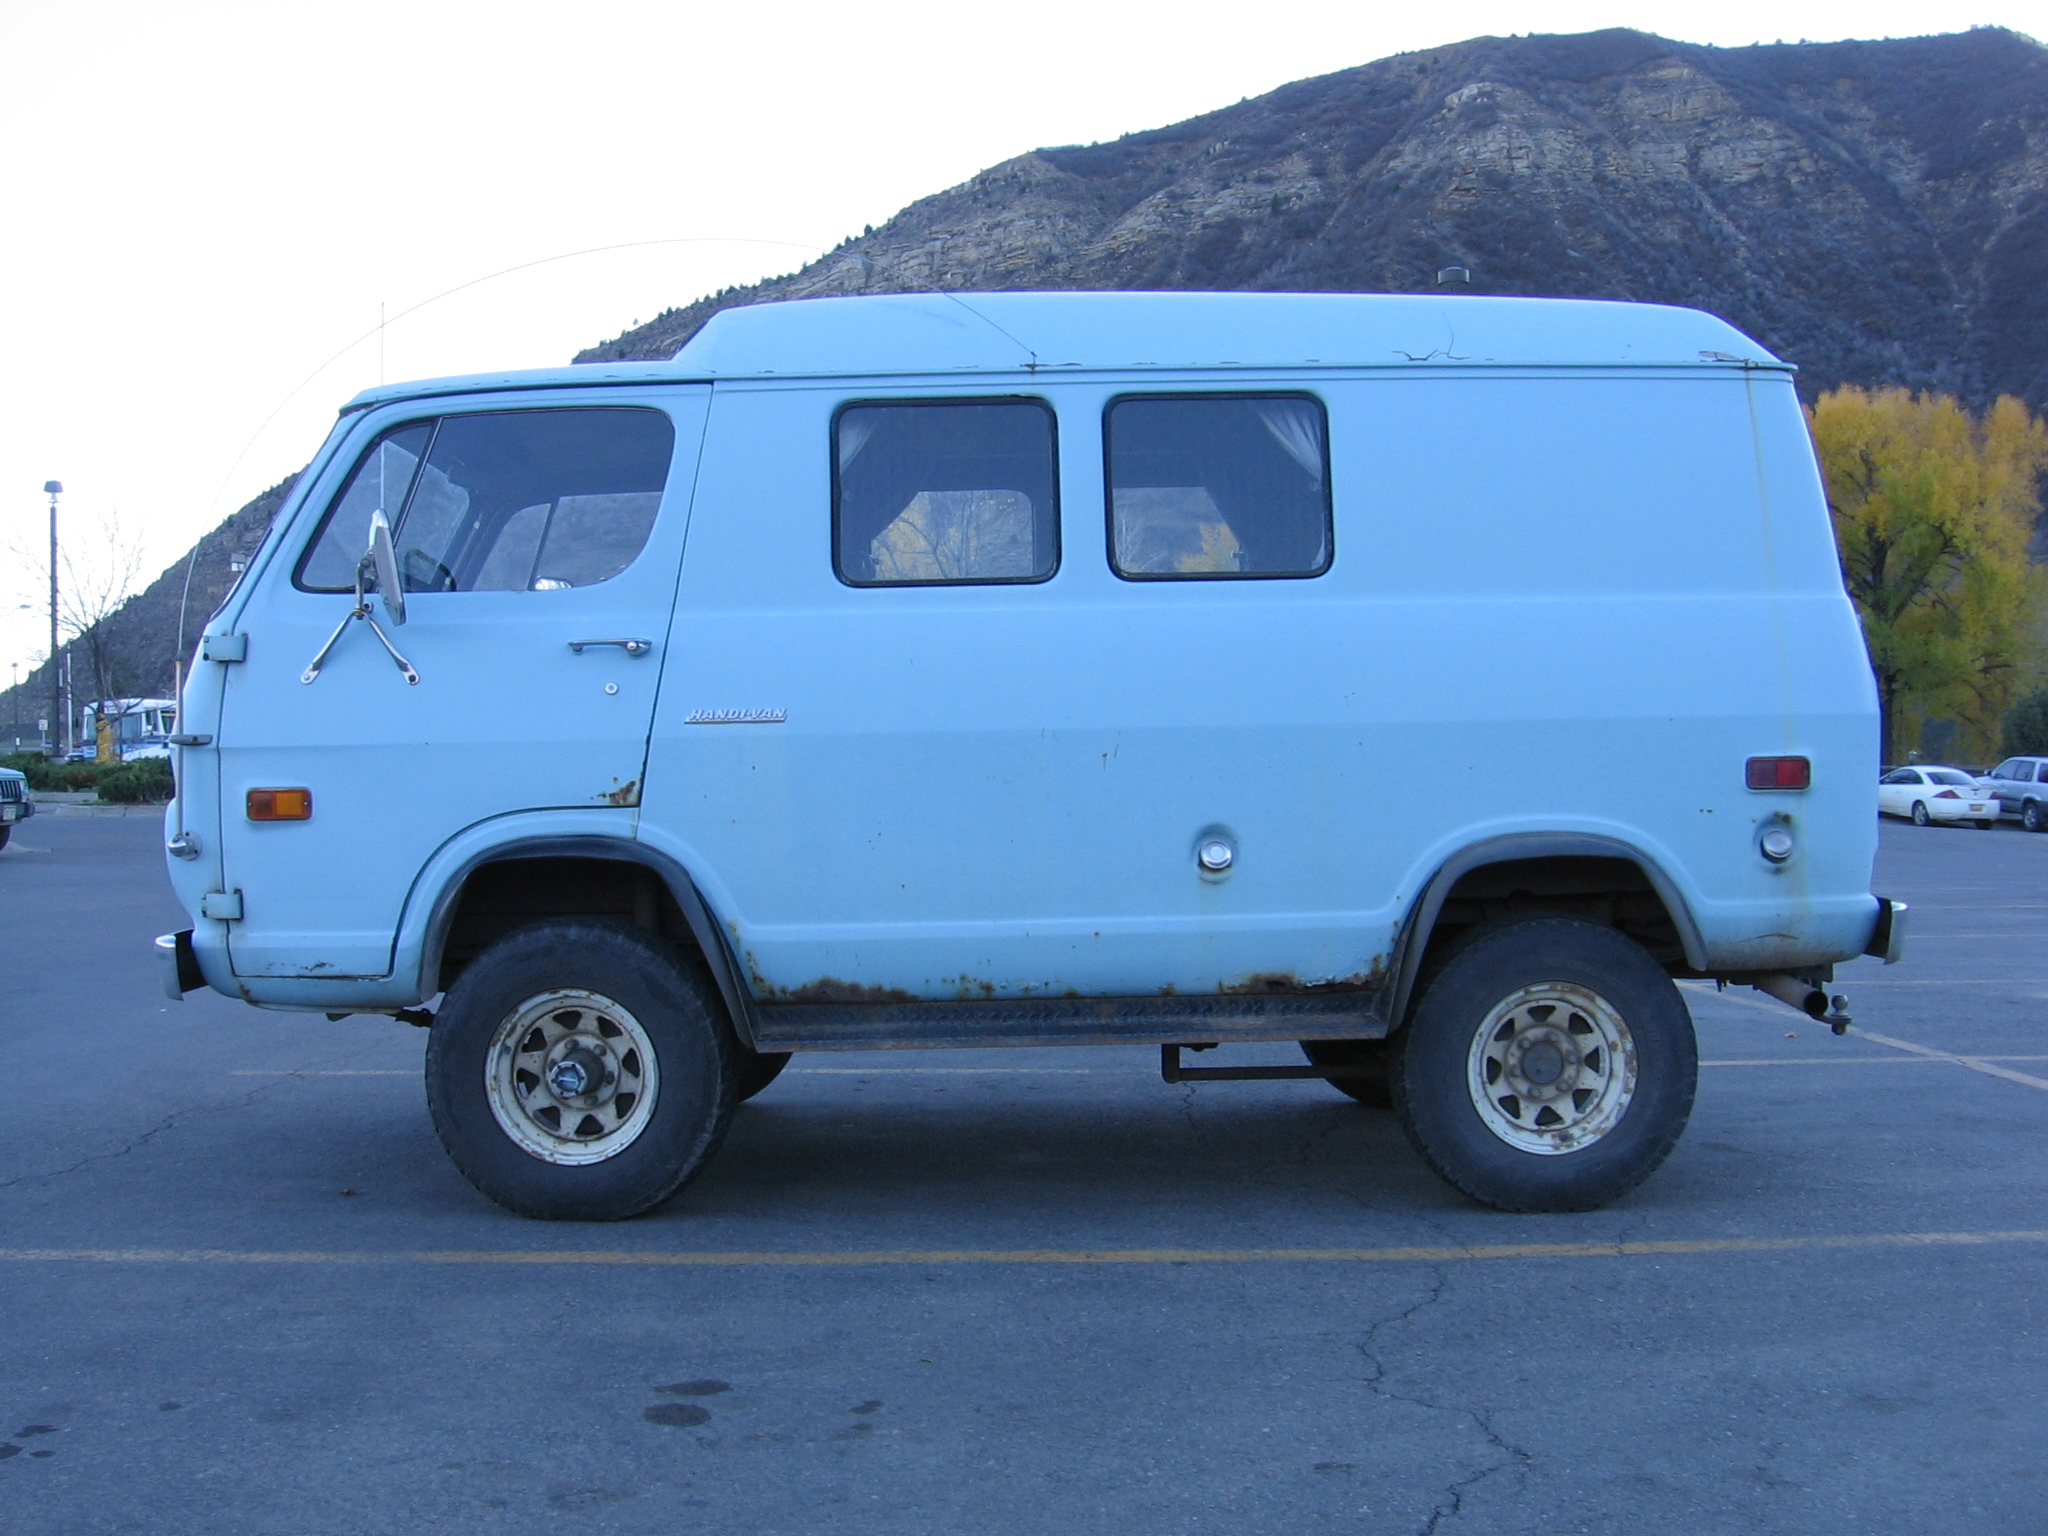 1967 Chevy Van Craigslist Autos Post